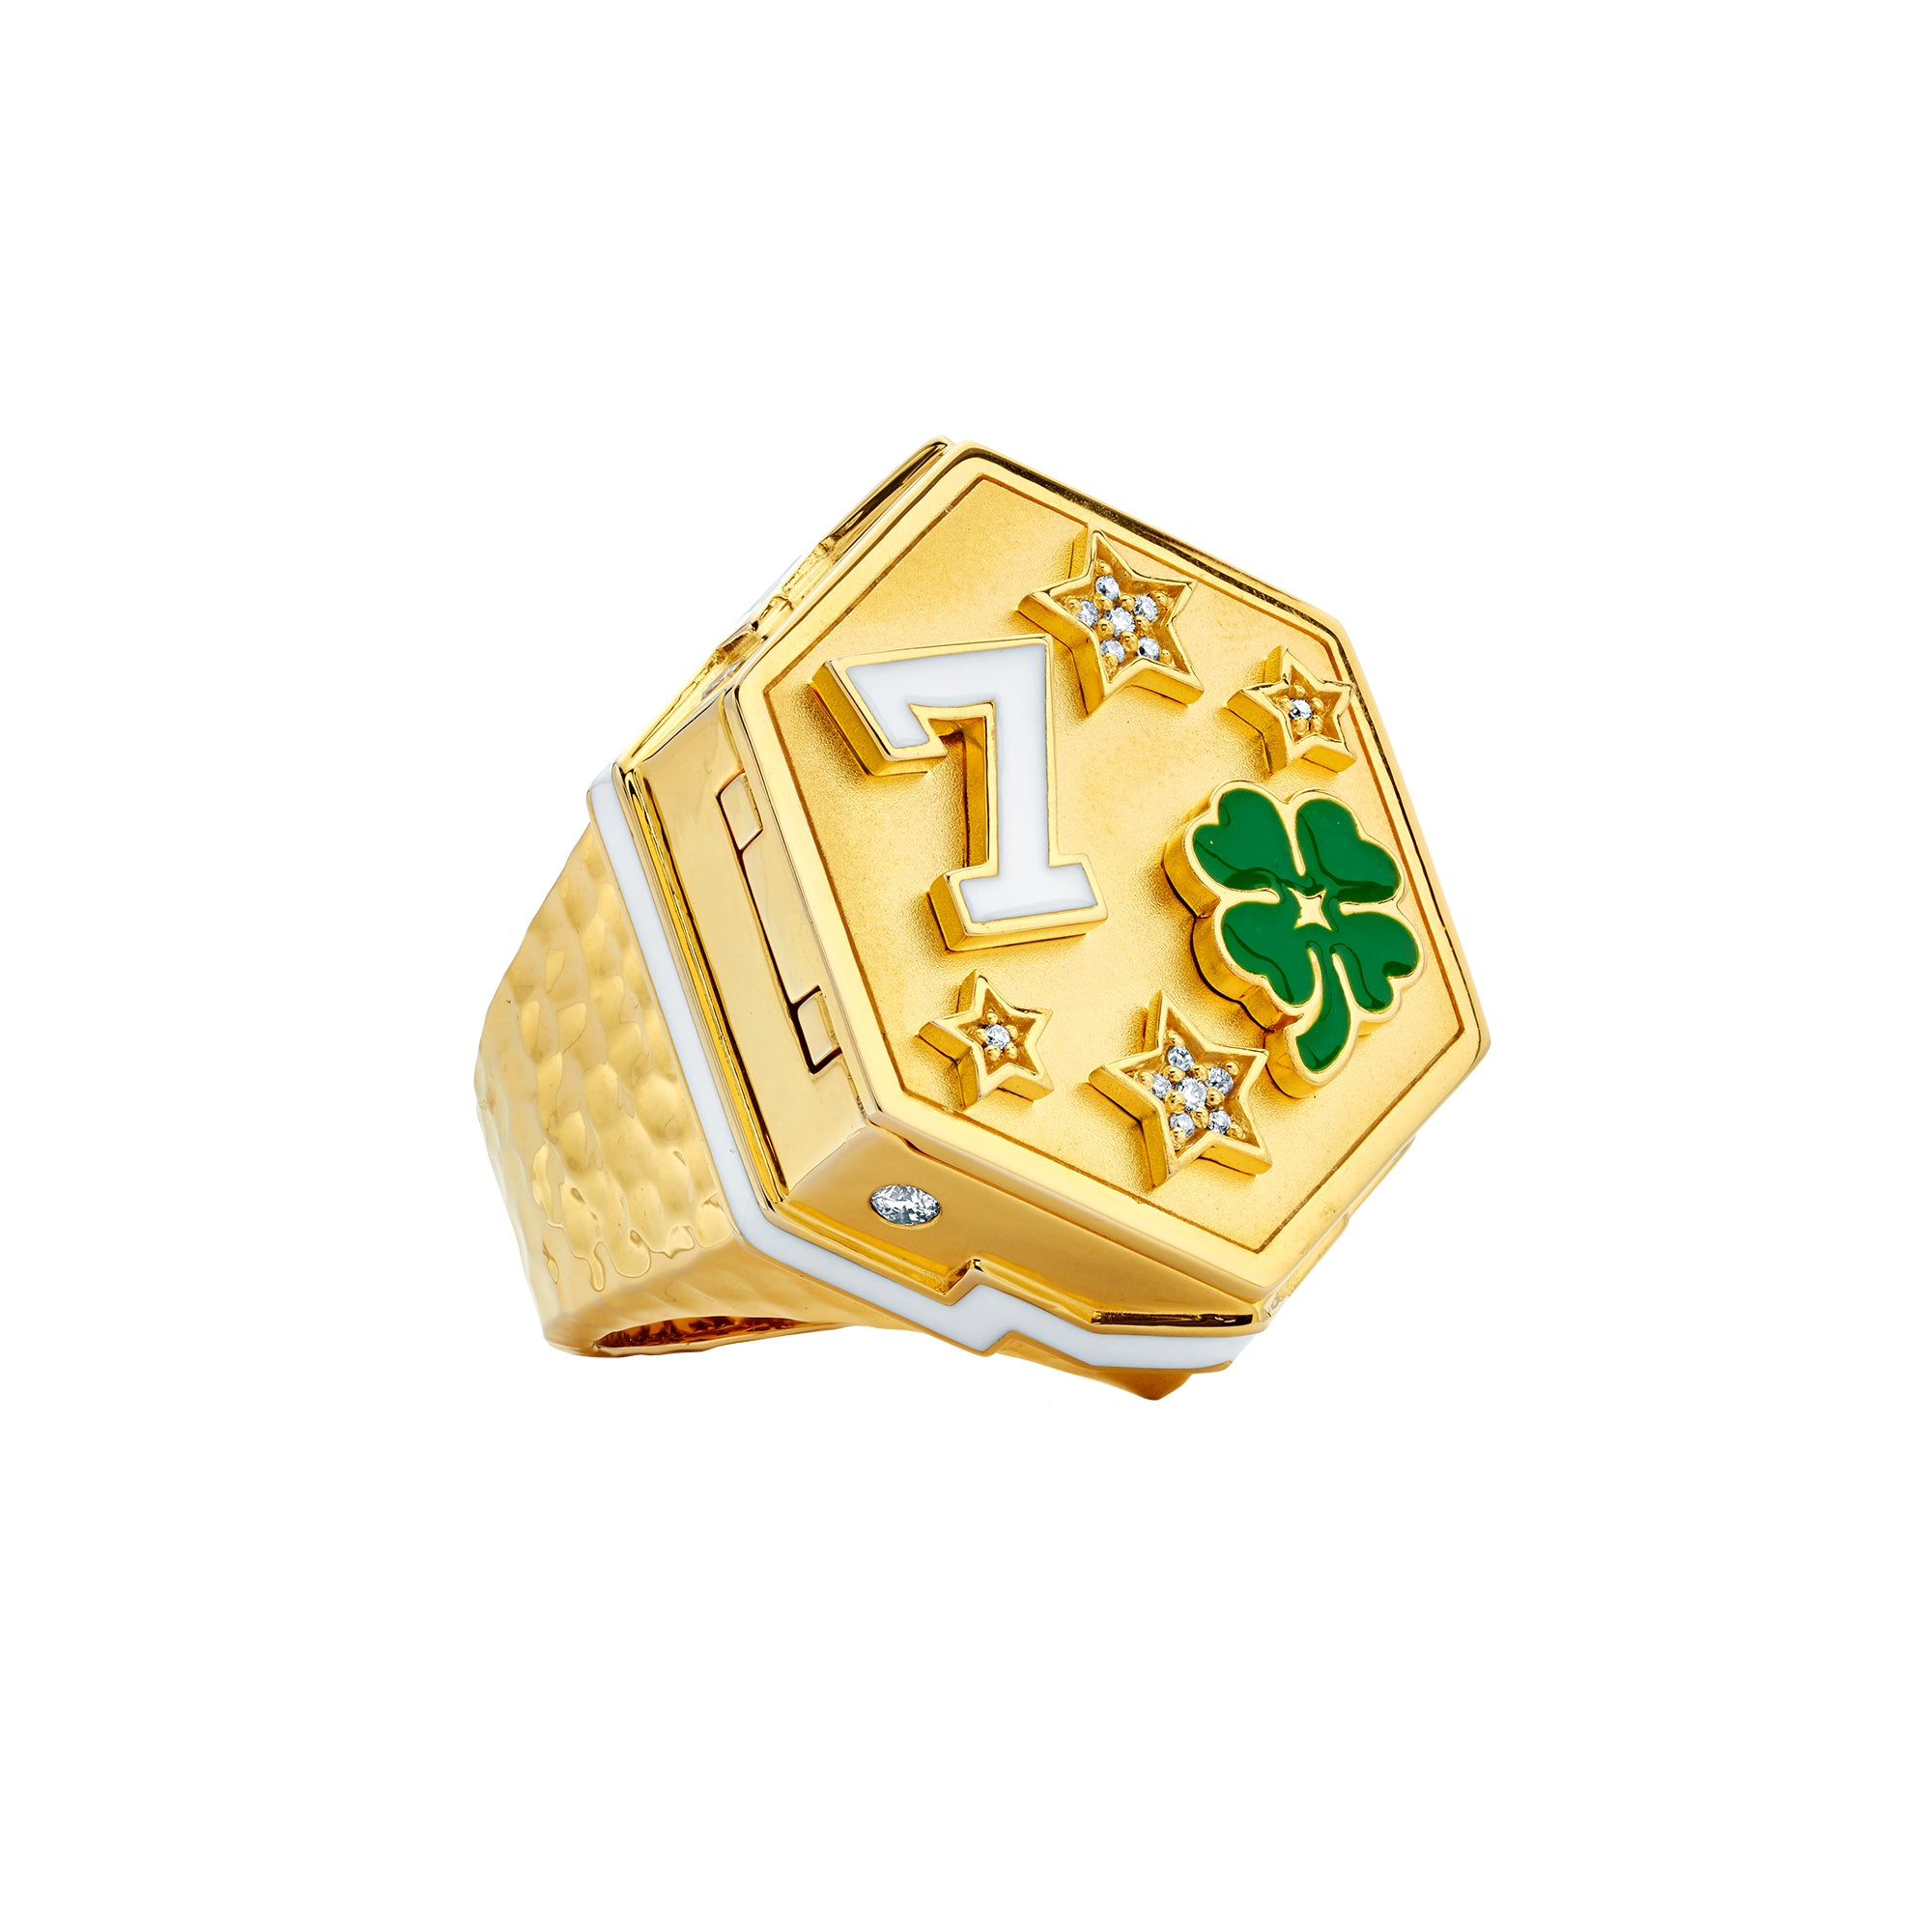 Gold Enamel White Diamond Lucky Locket Ring by Buddha Mama for Broken English Jewelry